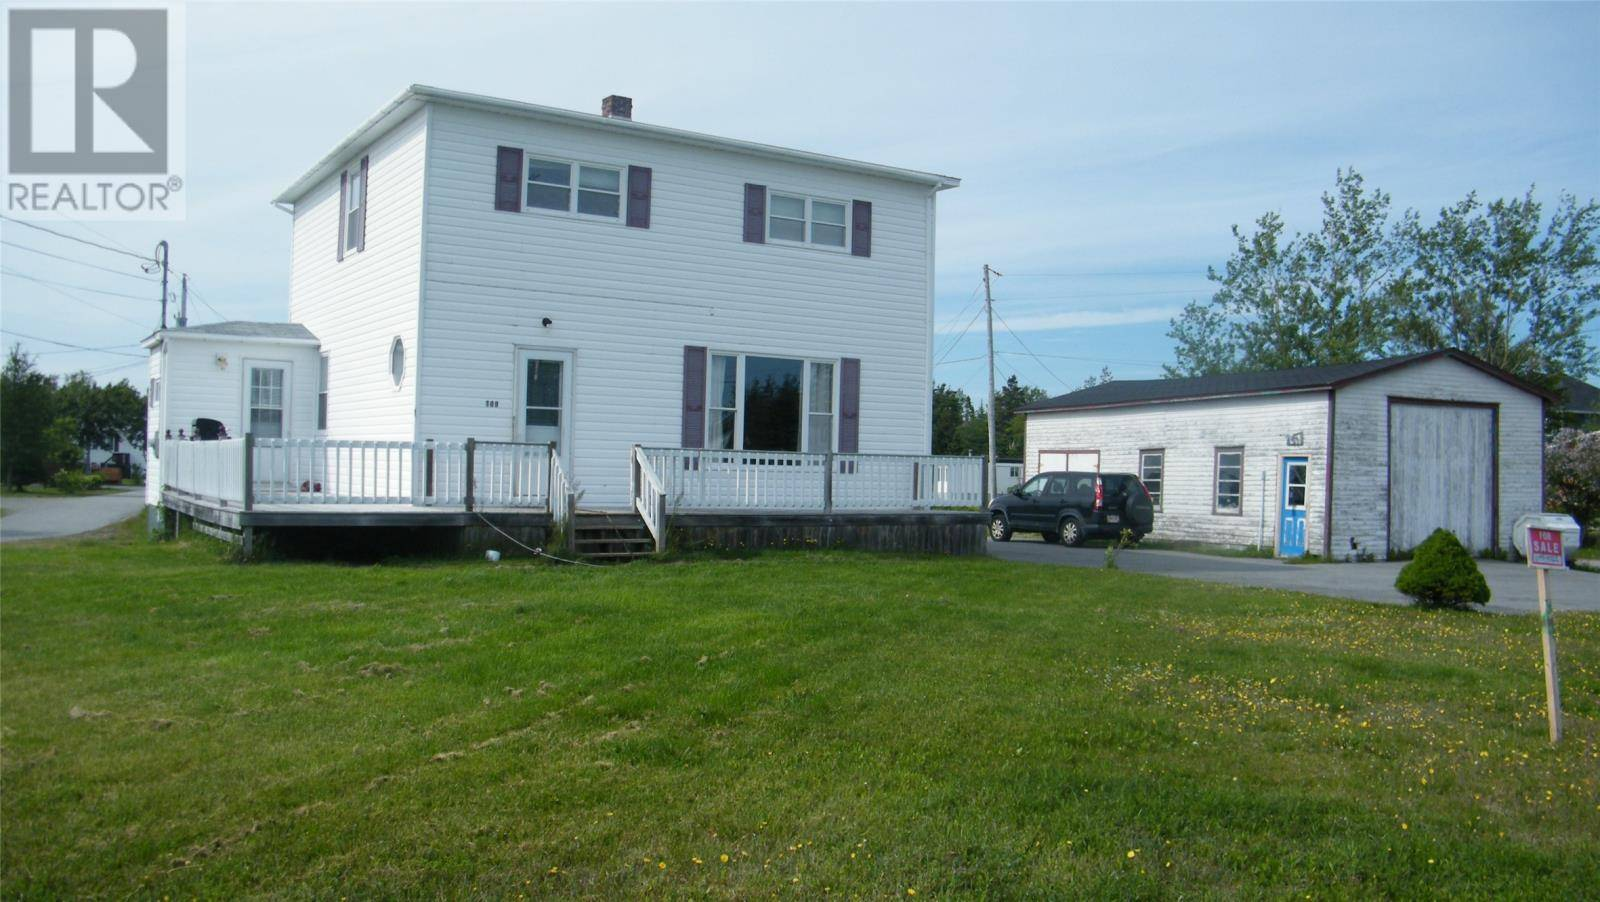 House for sale at 109 Brook St Stephenville Crossing Newfoundland - MLS: 1199236